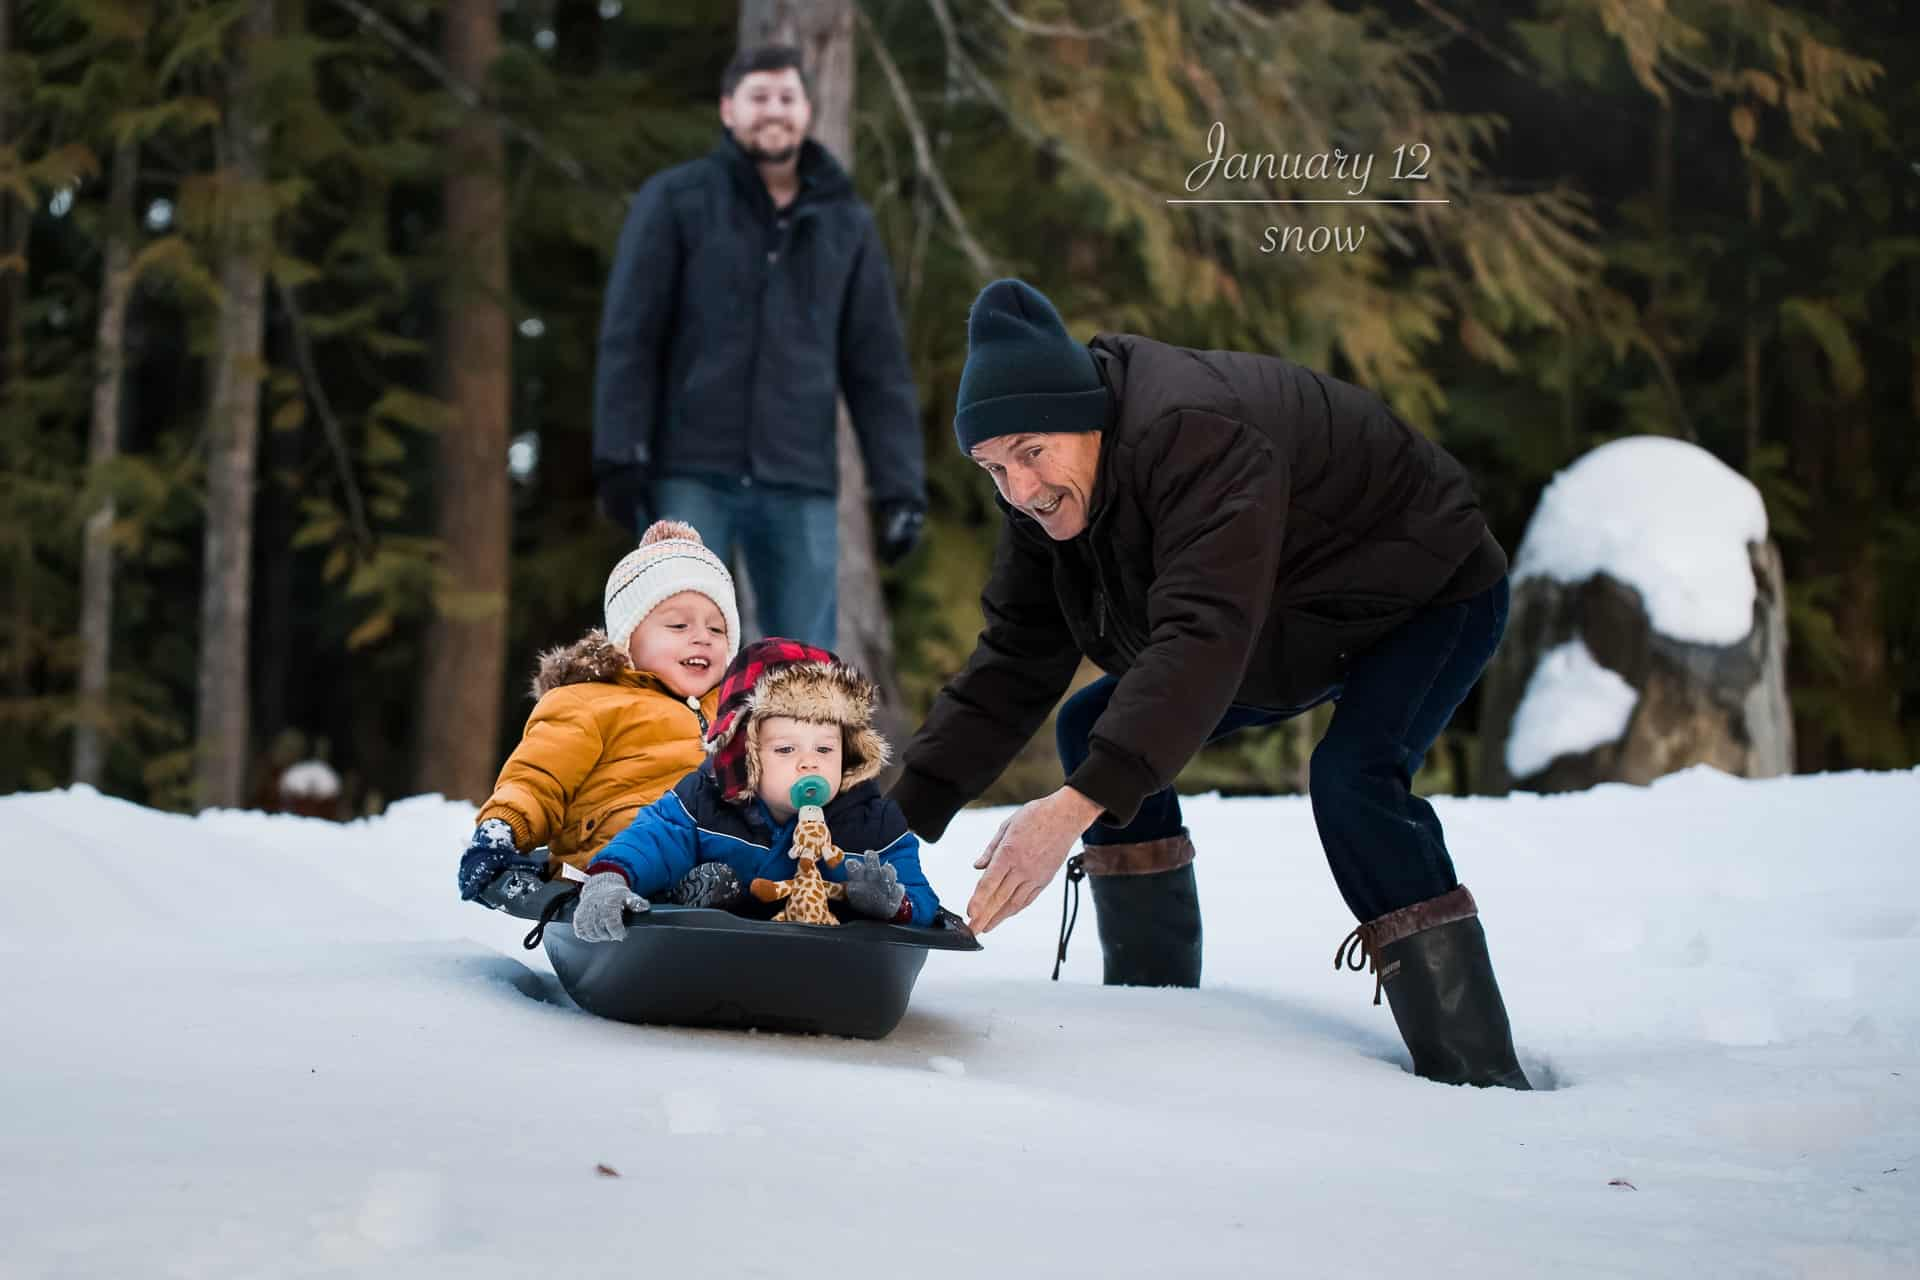 two toddlers sledding down a snowy hill while grandpa pushes them and dad smiles in the background